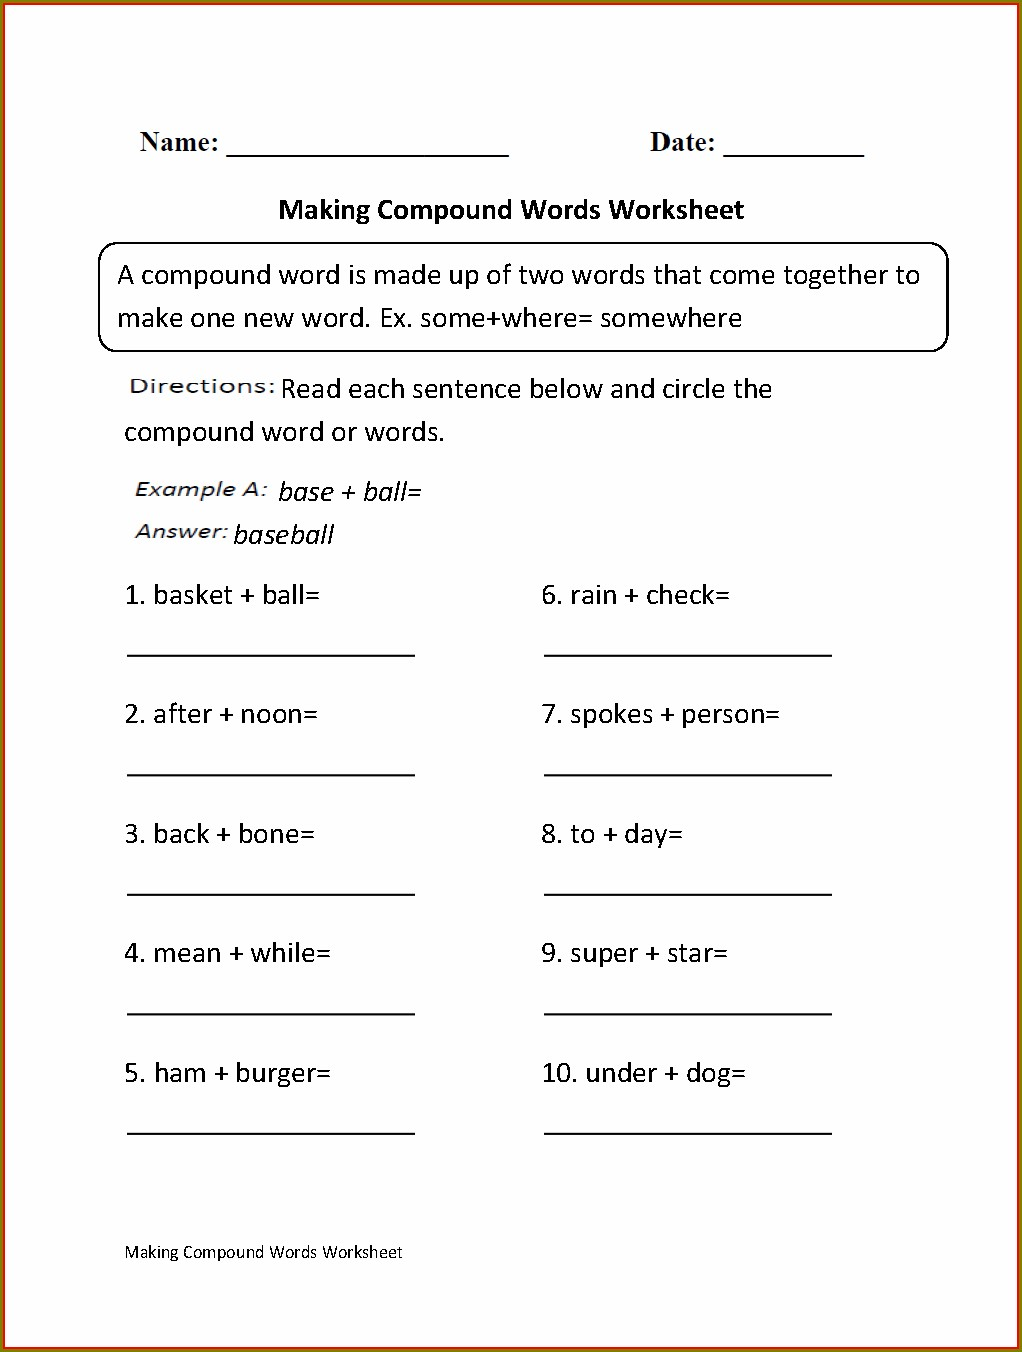 Compound Words Worksheet For Grade 9